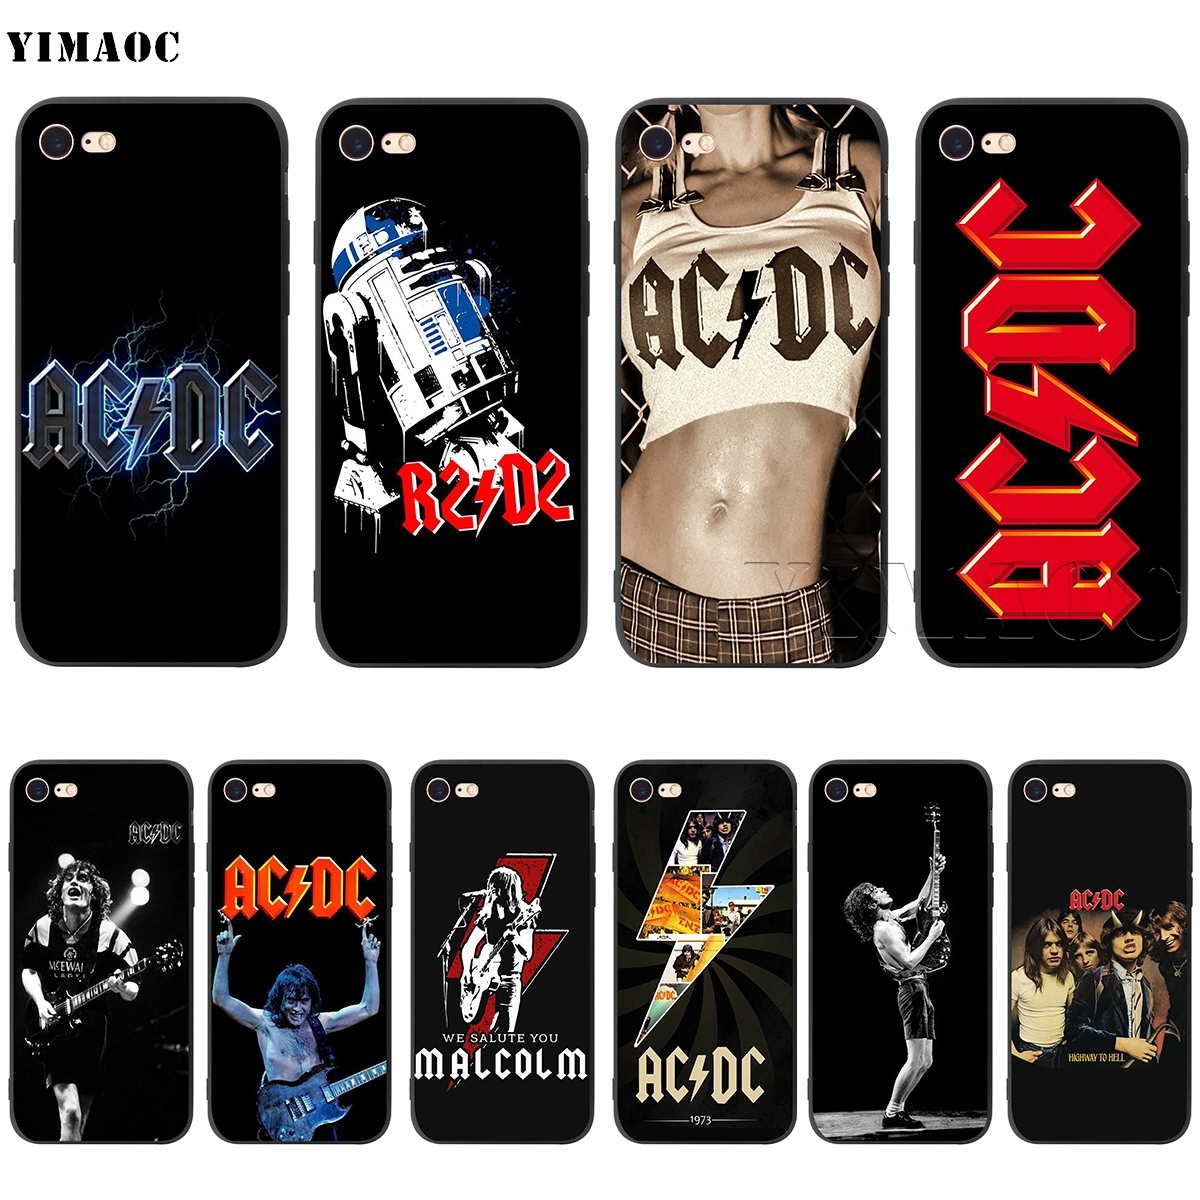 Yimaoc Acdc Rock Silicone Soft Case For Iphone Xs Max Xr X 8 7 6 6s Plus 5 5s Se